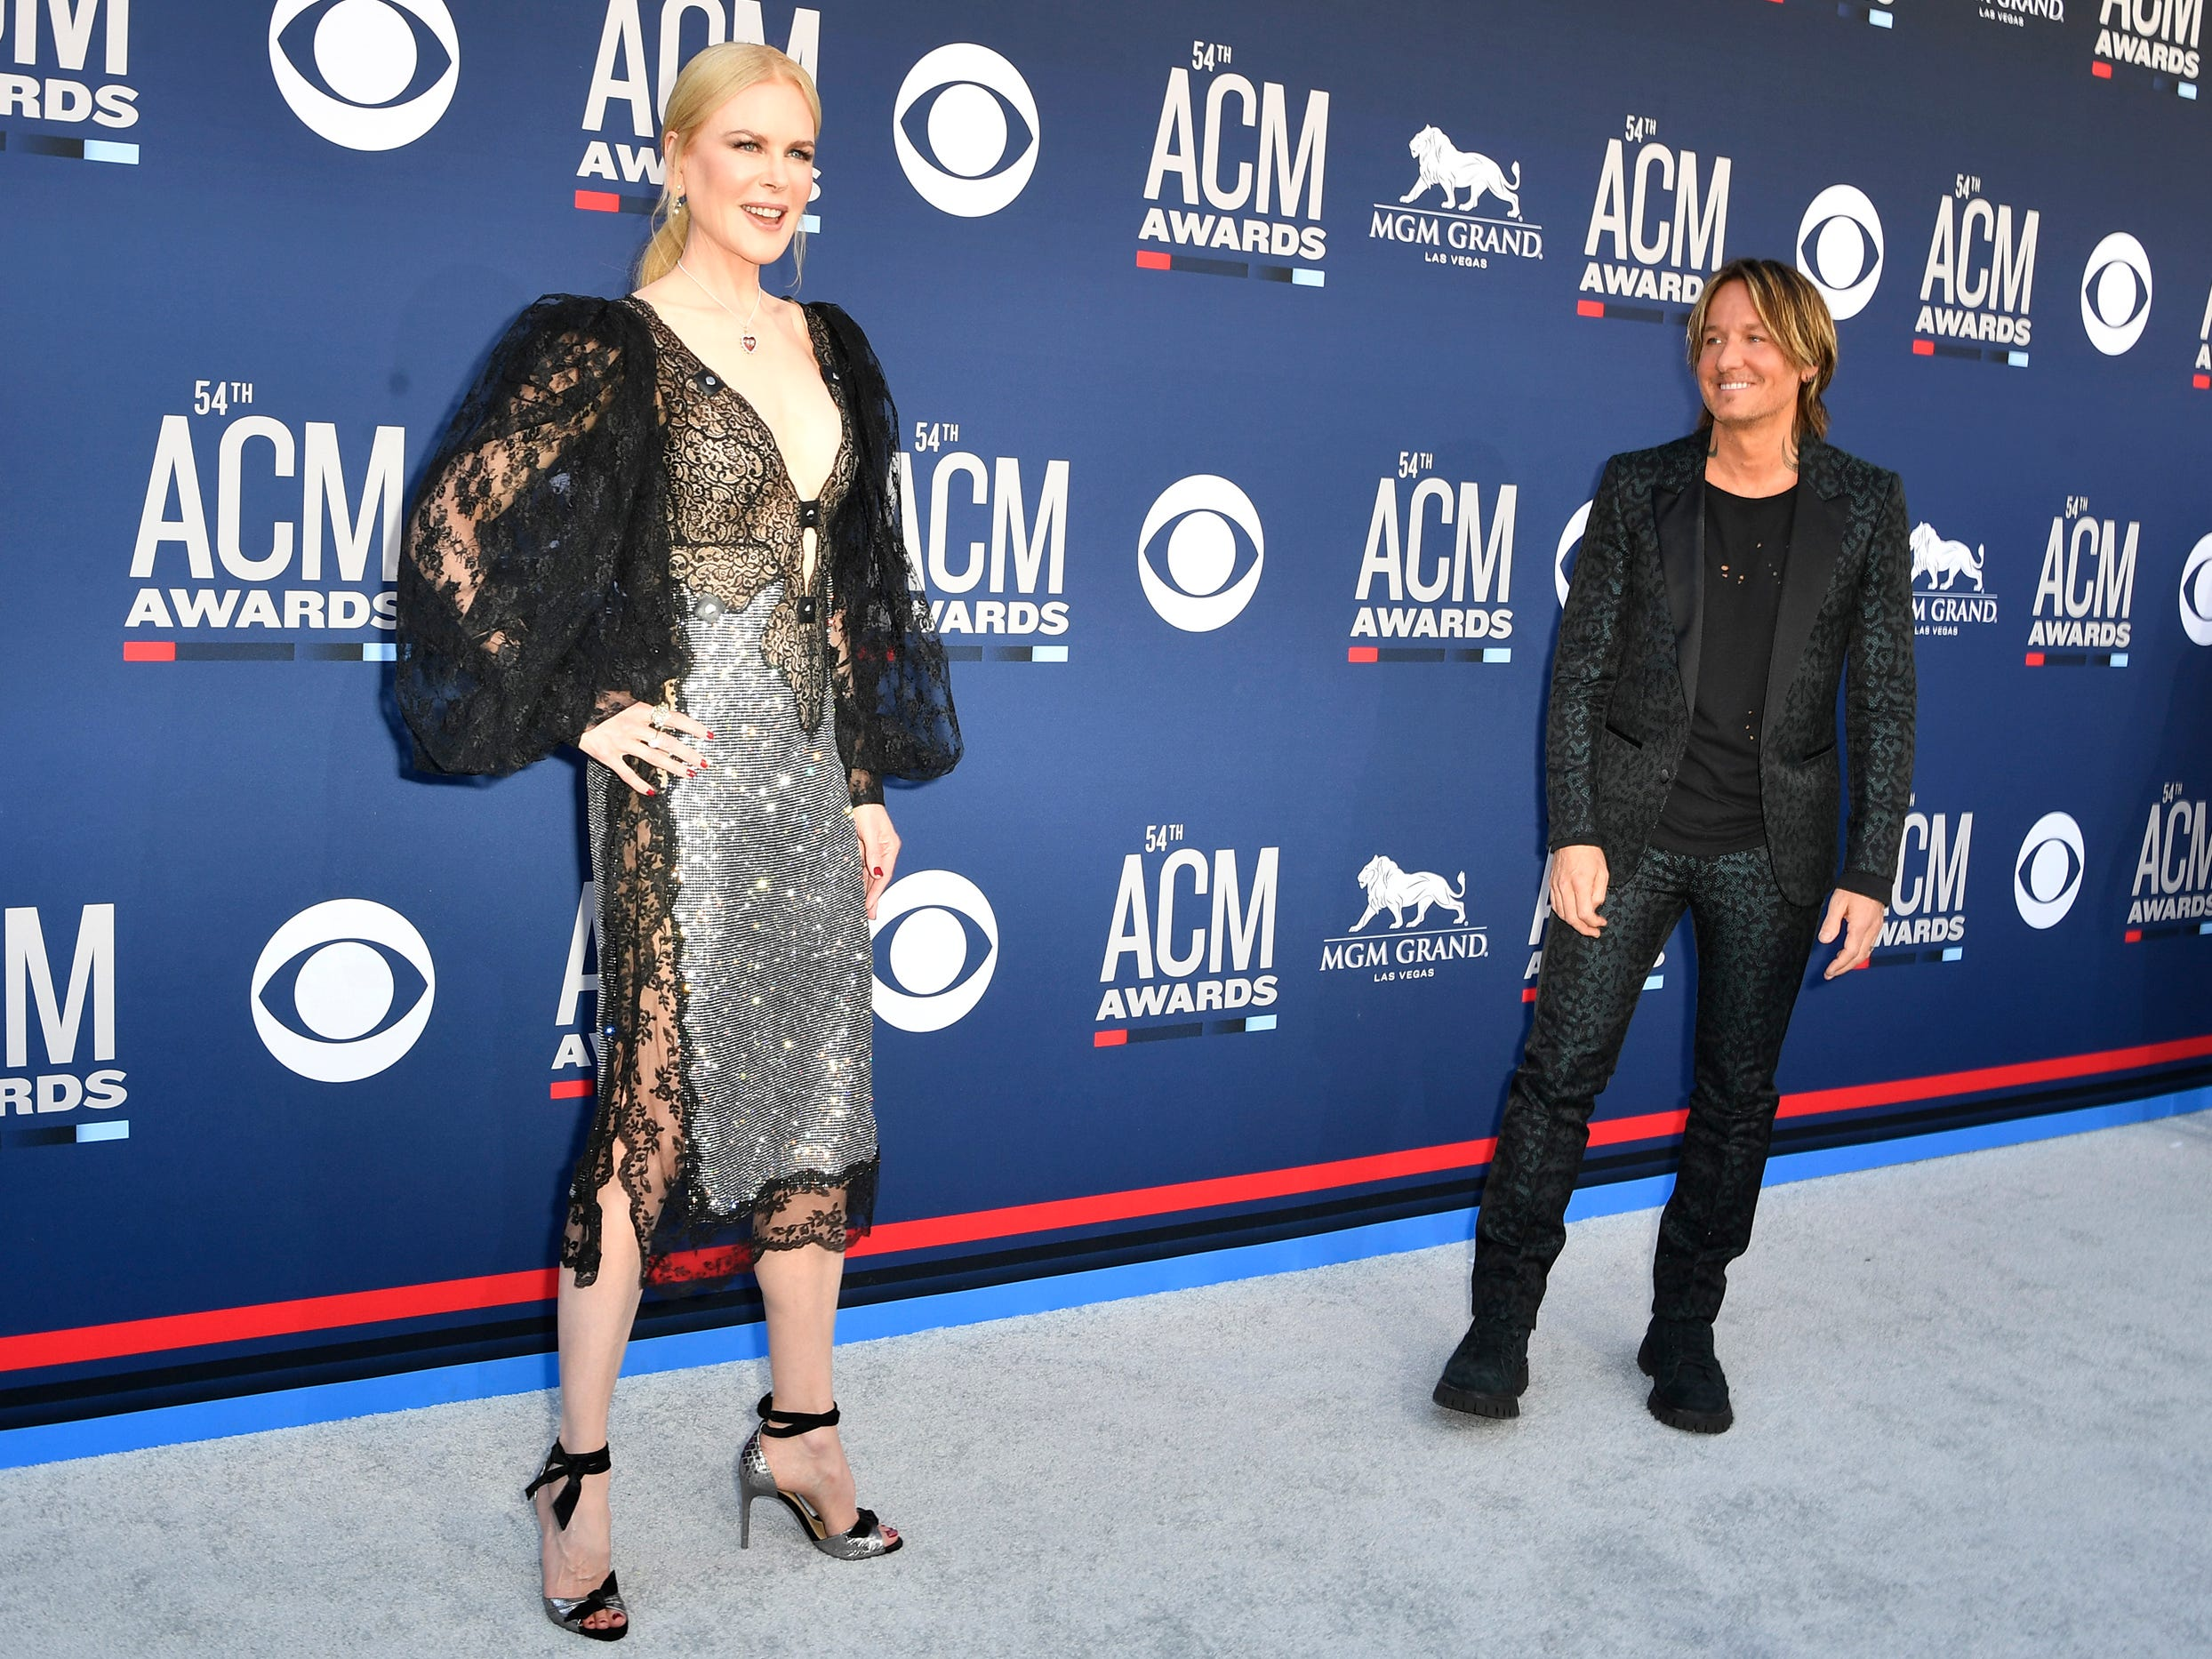 Nicole Kidman, left, with Keith Urban, walk the red carpet at the 54TH Academy of Country Music Awards Sunday, April 7, 2019, in Las Vegas, Nev.